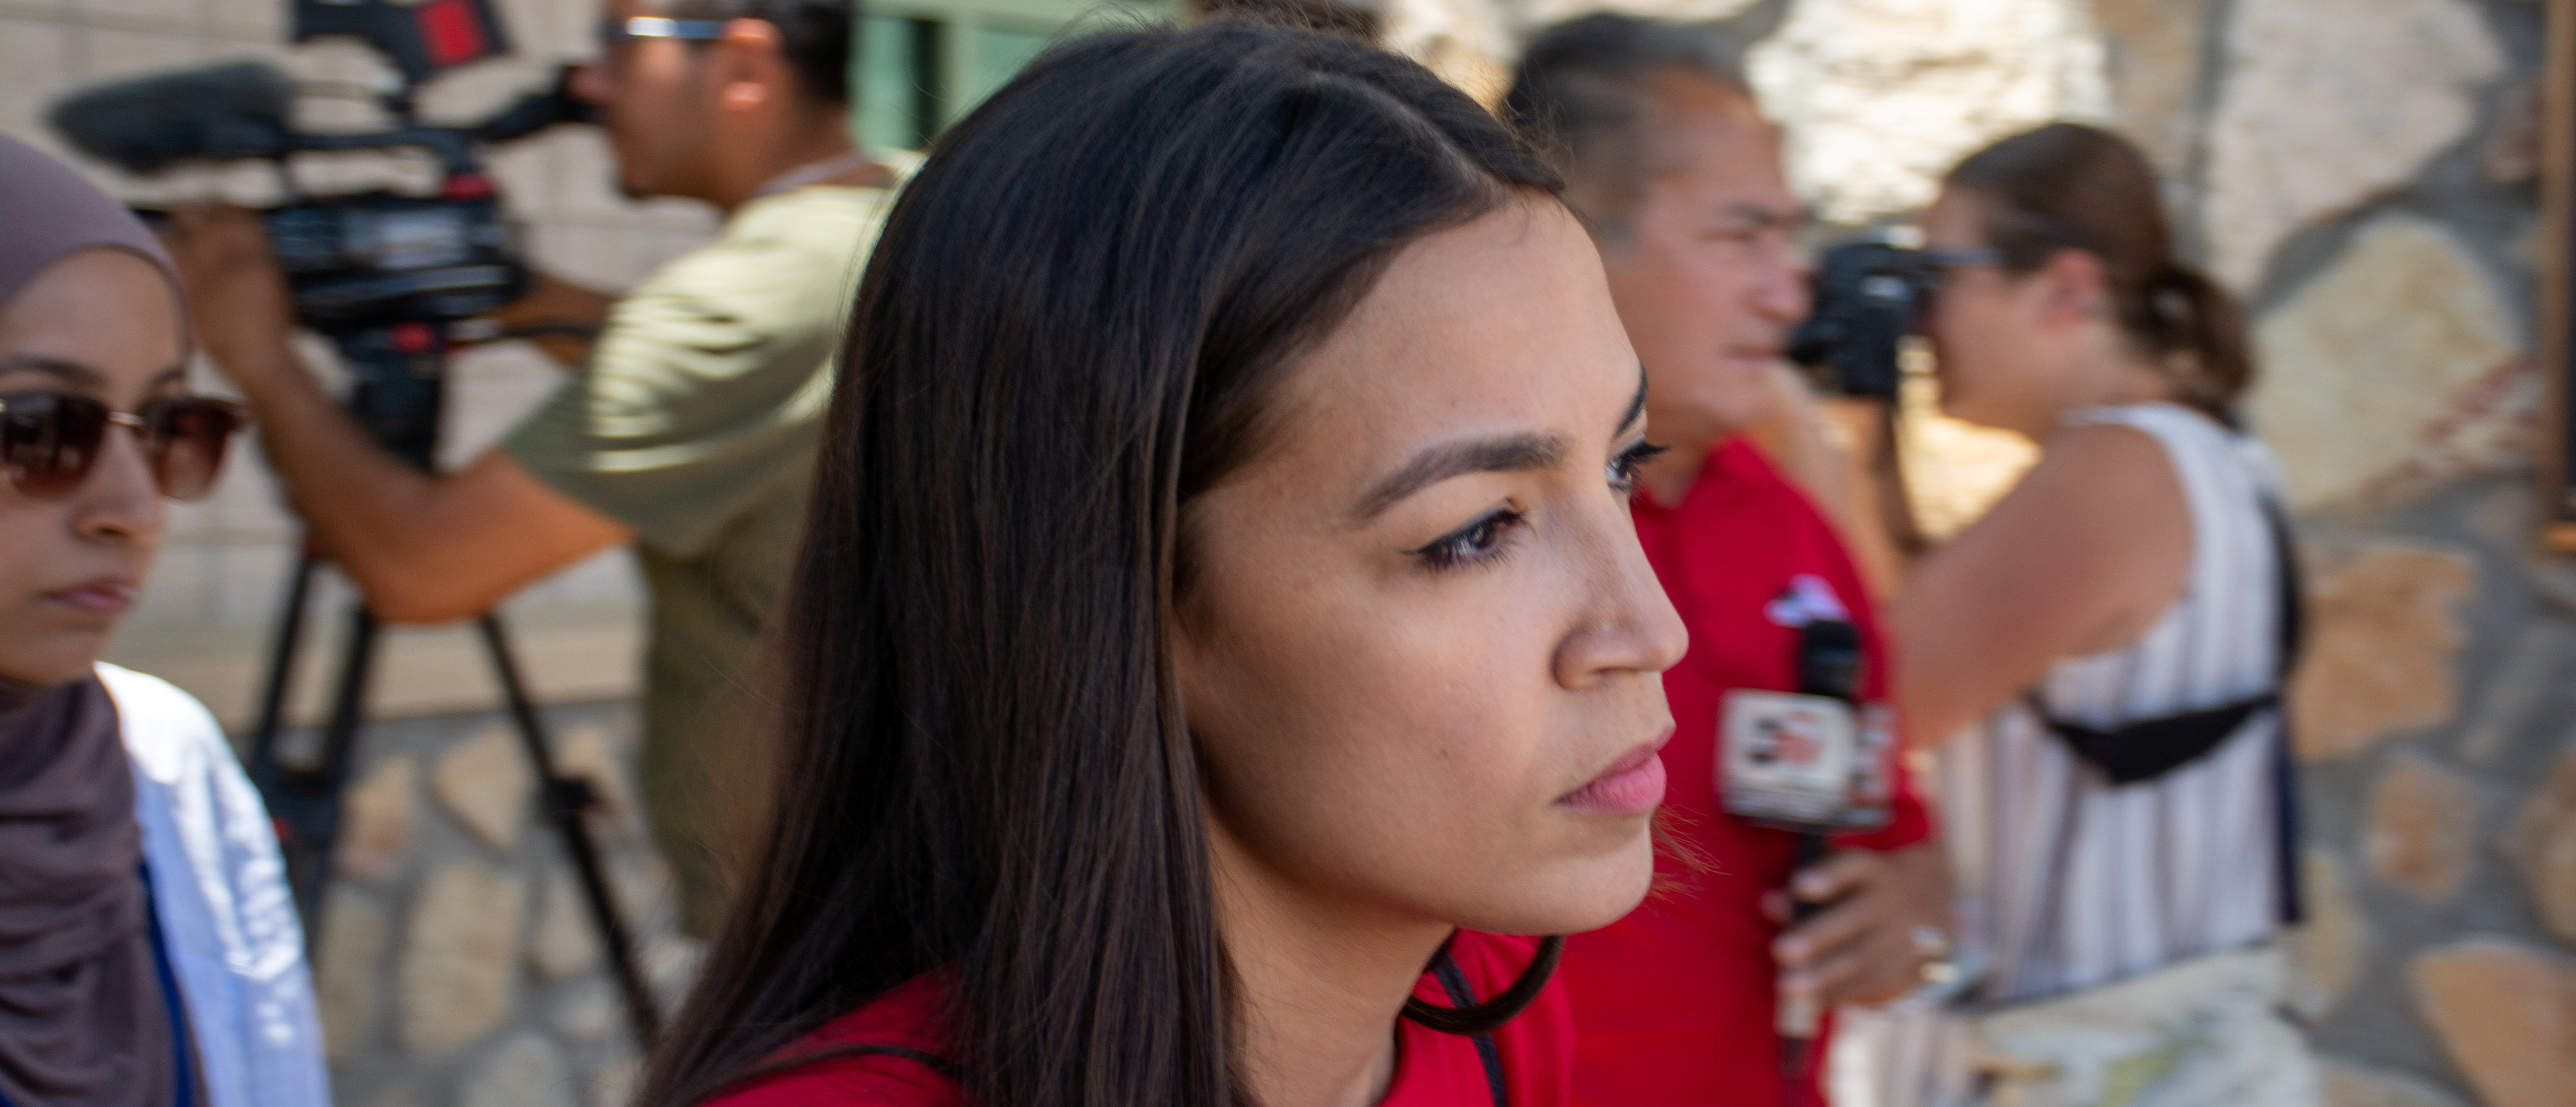 U.S. Rep. Alexandria Ocasio-Cortez leaves border patrol station during a tour of two facilities in El Paso